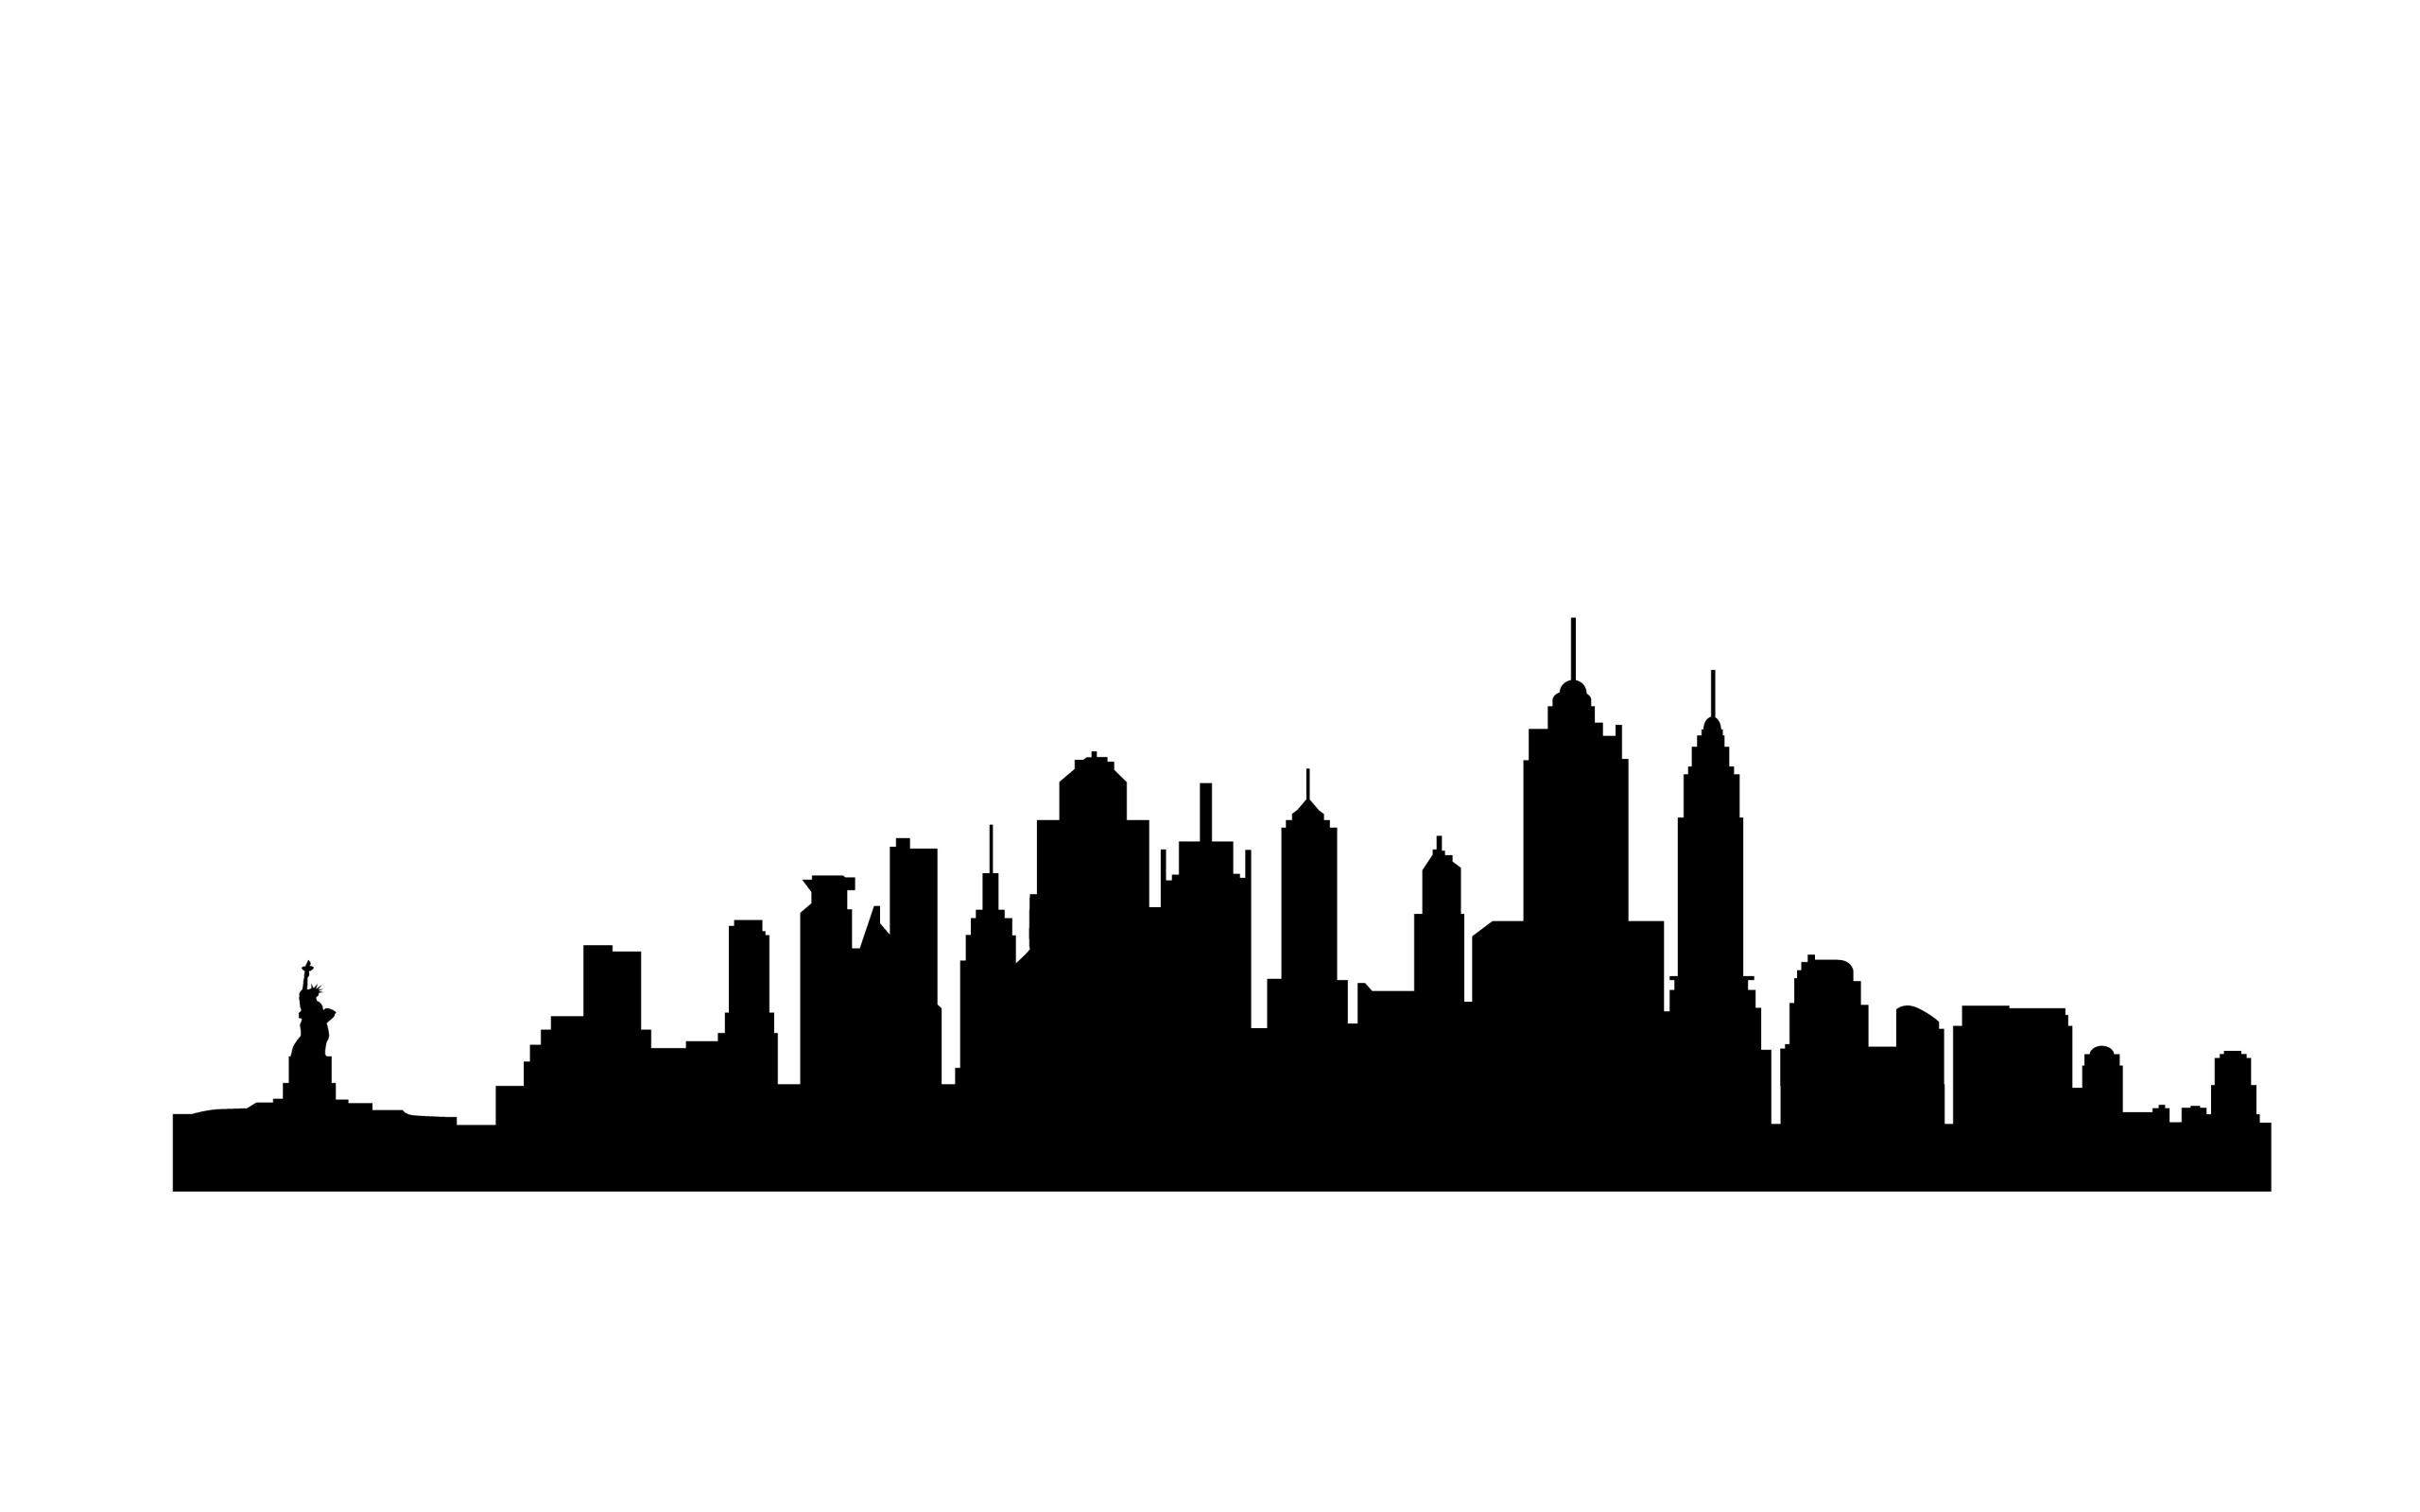 Cityscape clipart black backround clipart black and white download City Background Clipart | Free download best City Background Clipart ... clipart black and white download